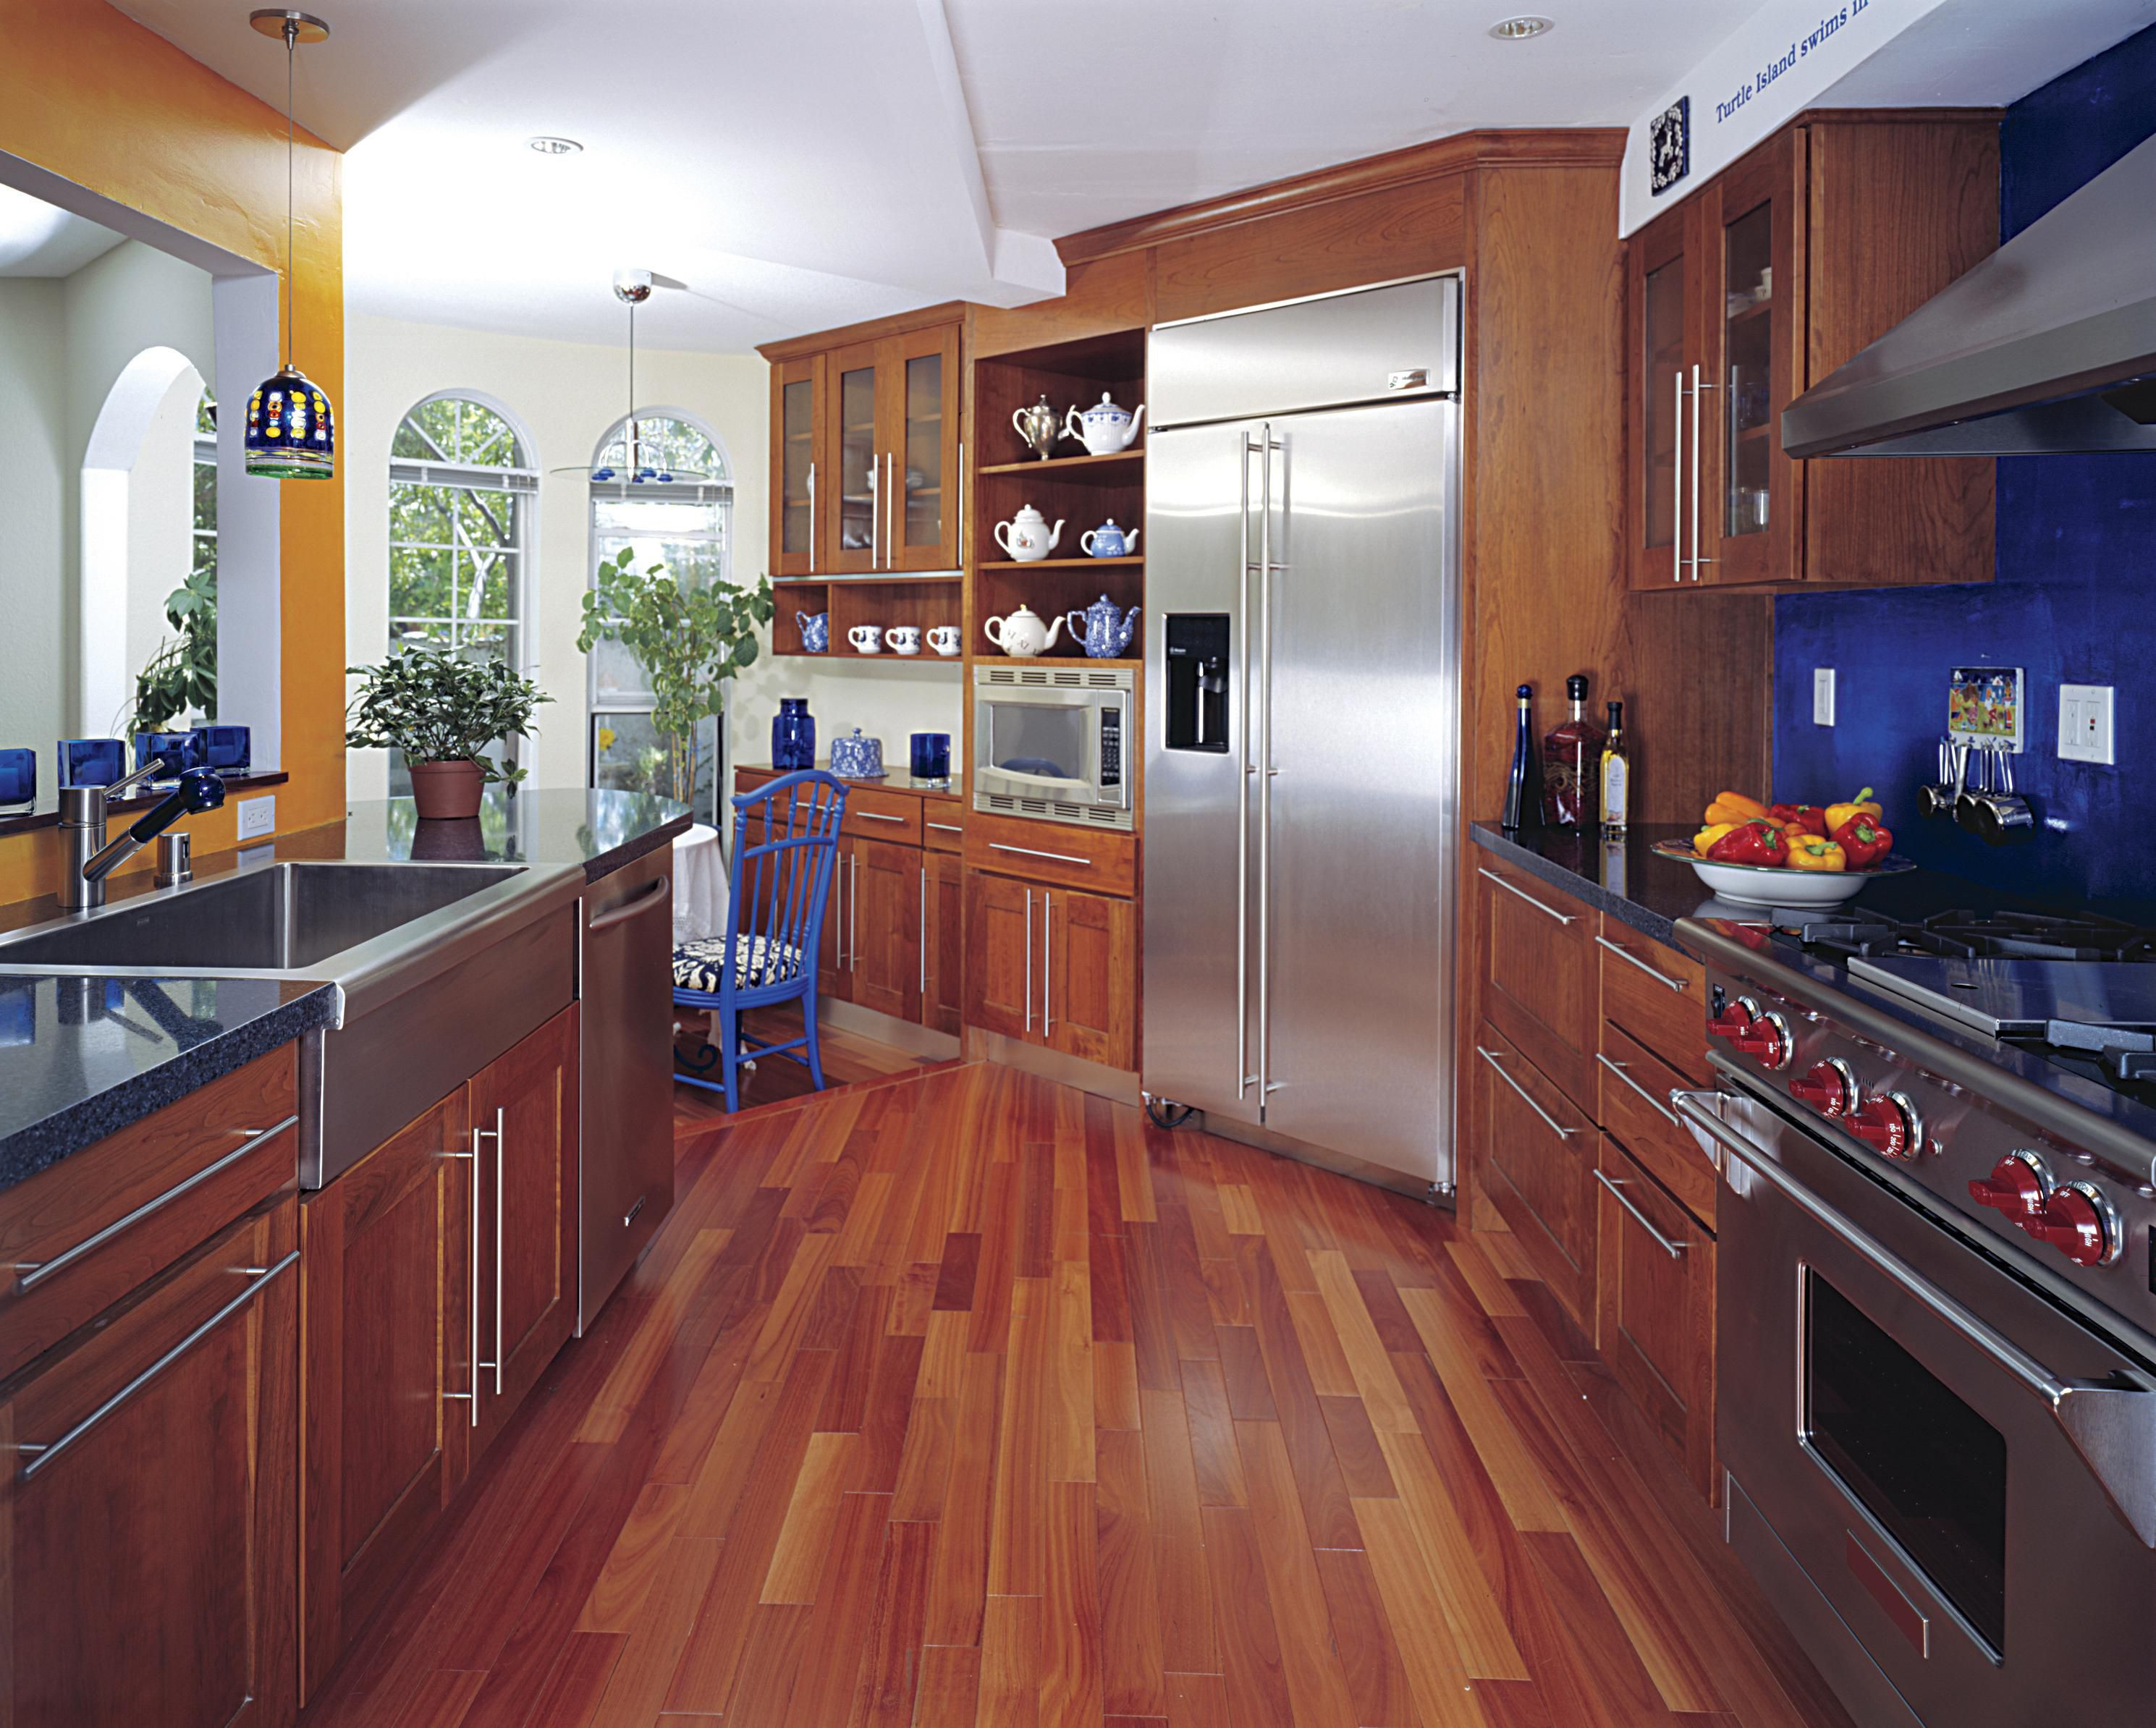 hardwood floor installation nails of hardwood floor in a kitchen is this allowed with regard to 186828472 56a49f3a5f9b58b7d0d7e142